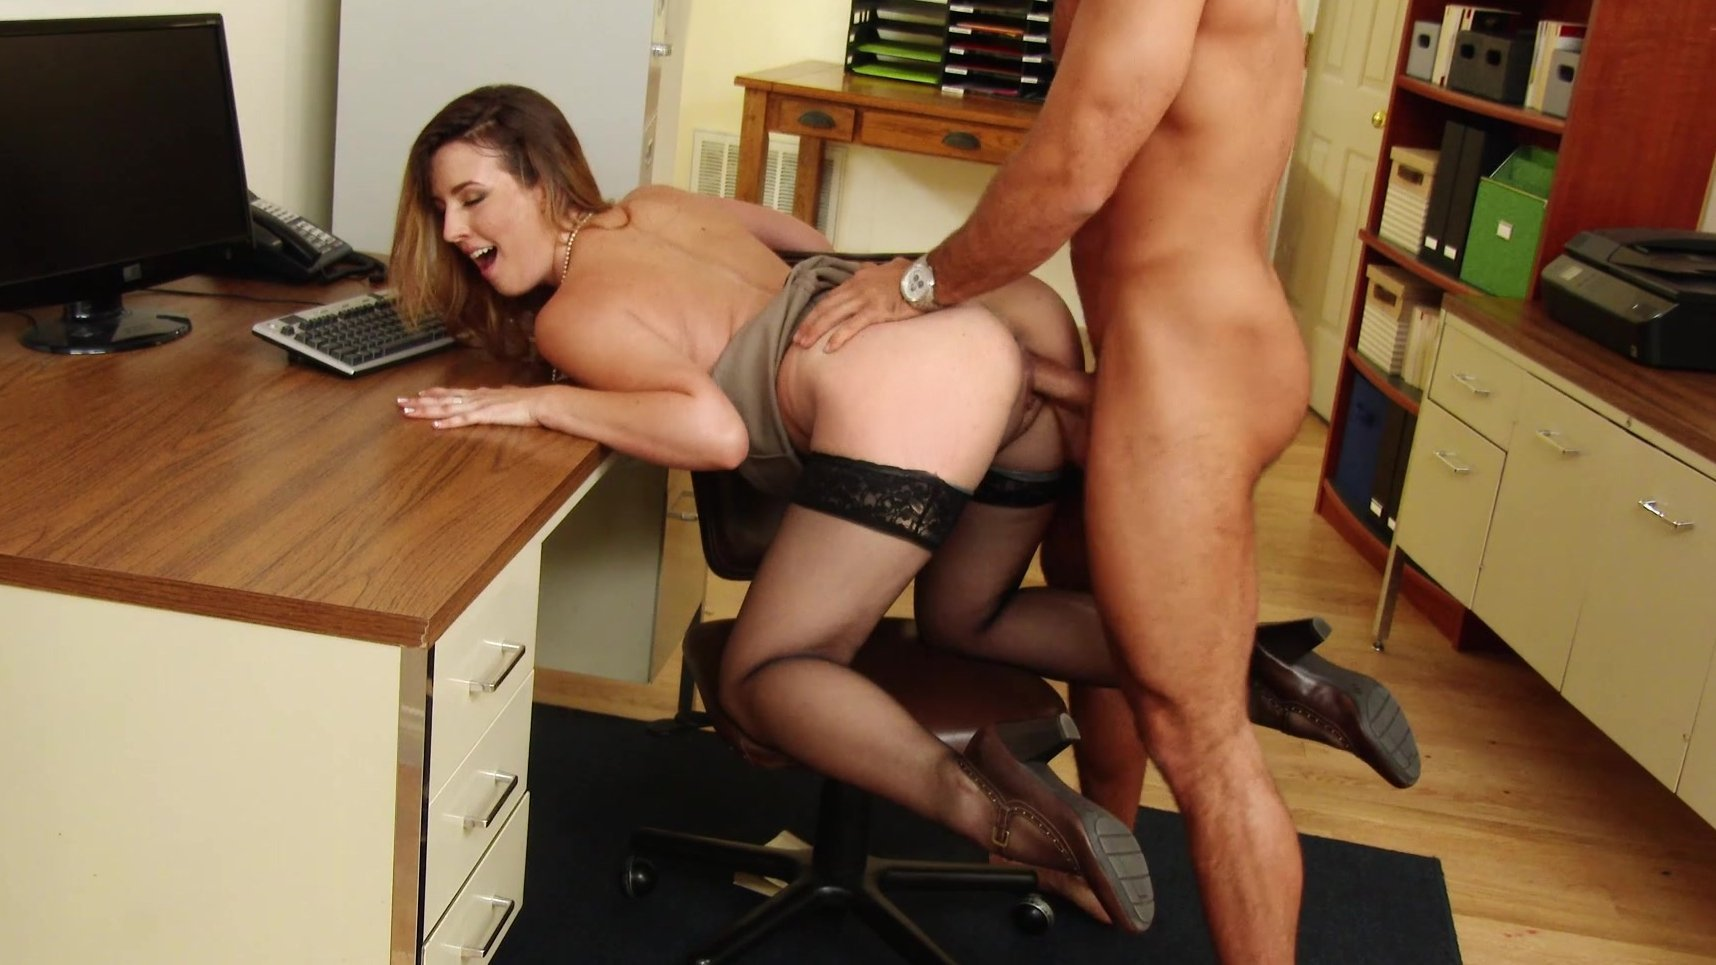 Secretary Cant Resist Free Adult Porn Clips